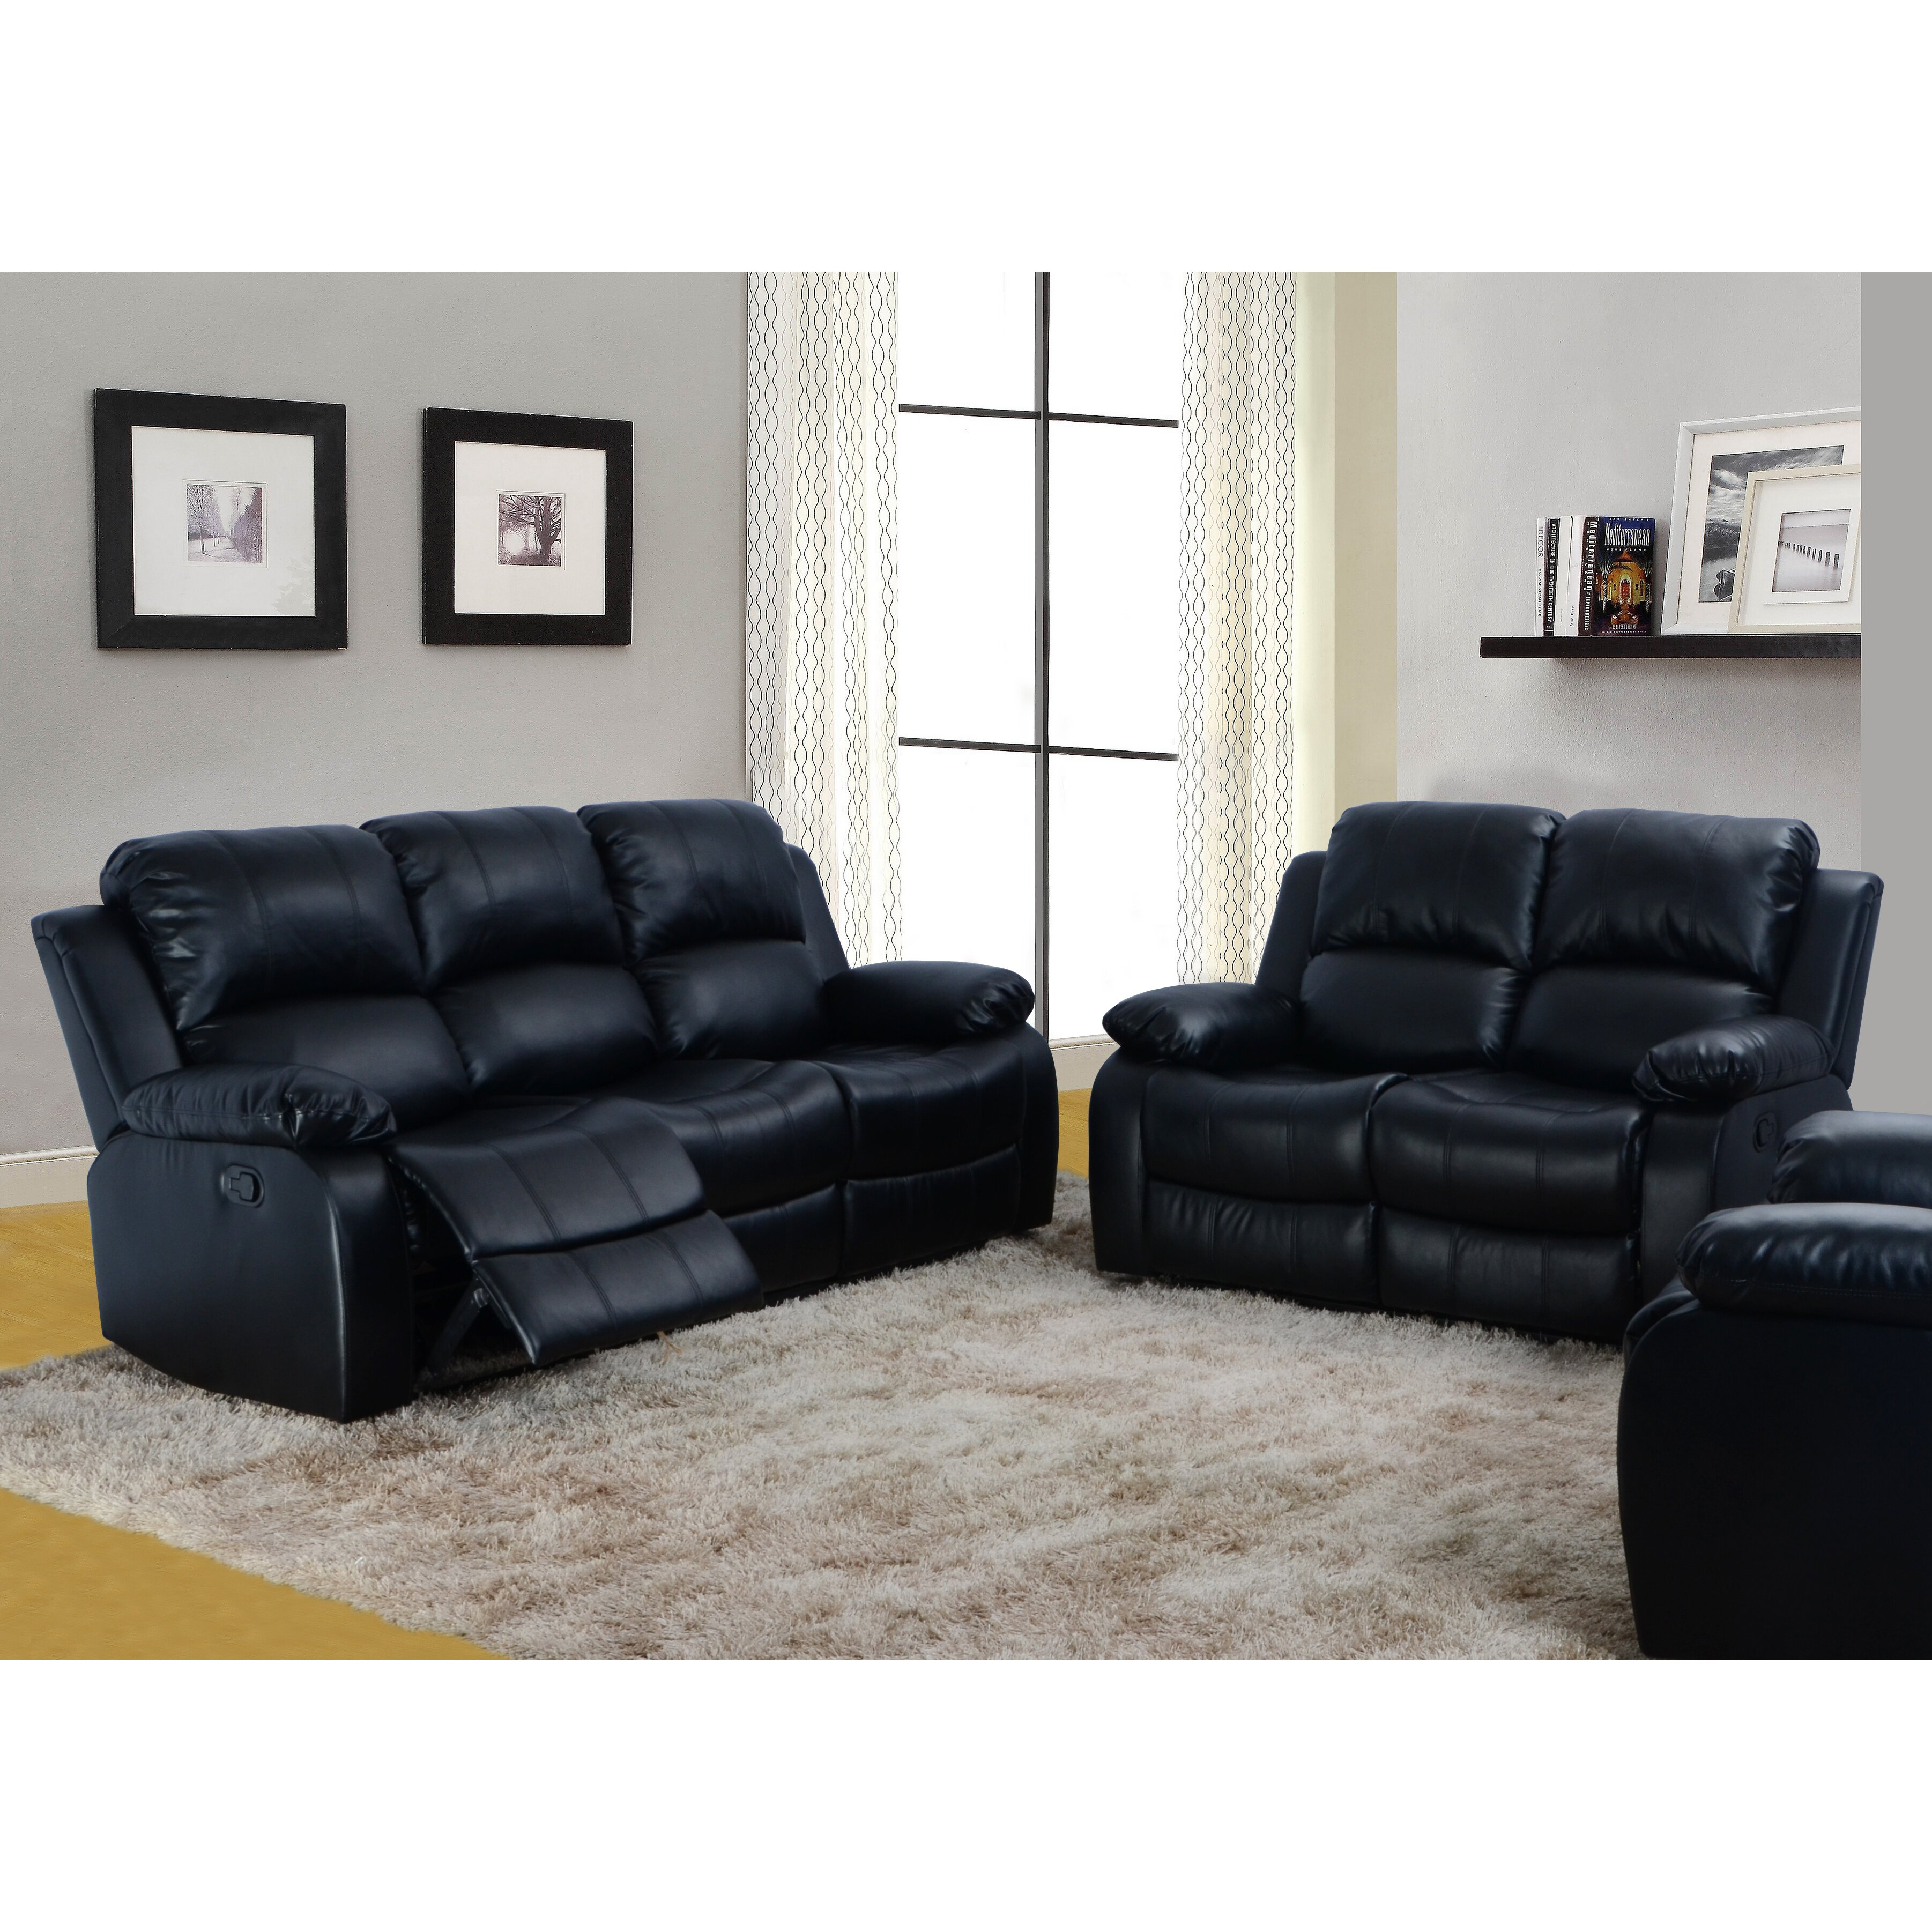 Beverly fine furniture denver 2 piece bonded leather reclining living room sofa set reviews 2 piece leather living room set